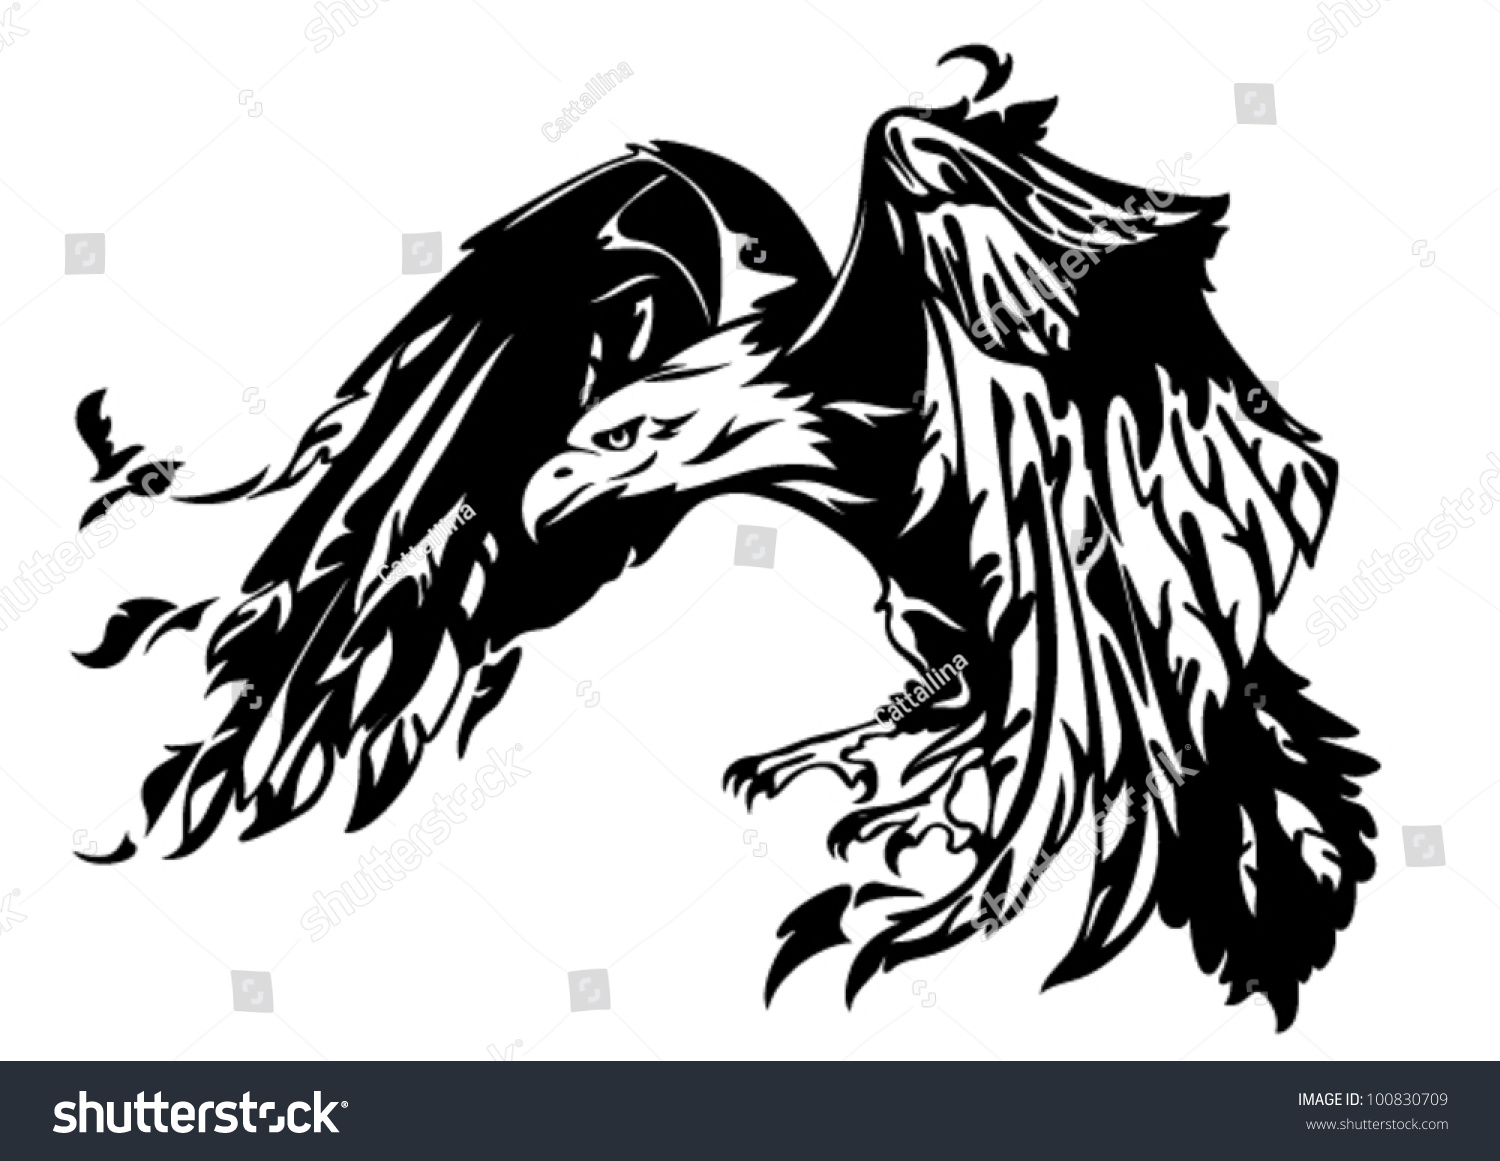 Eagle Black And White Vector